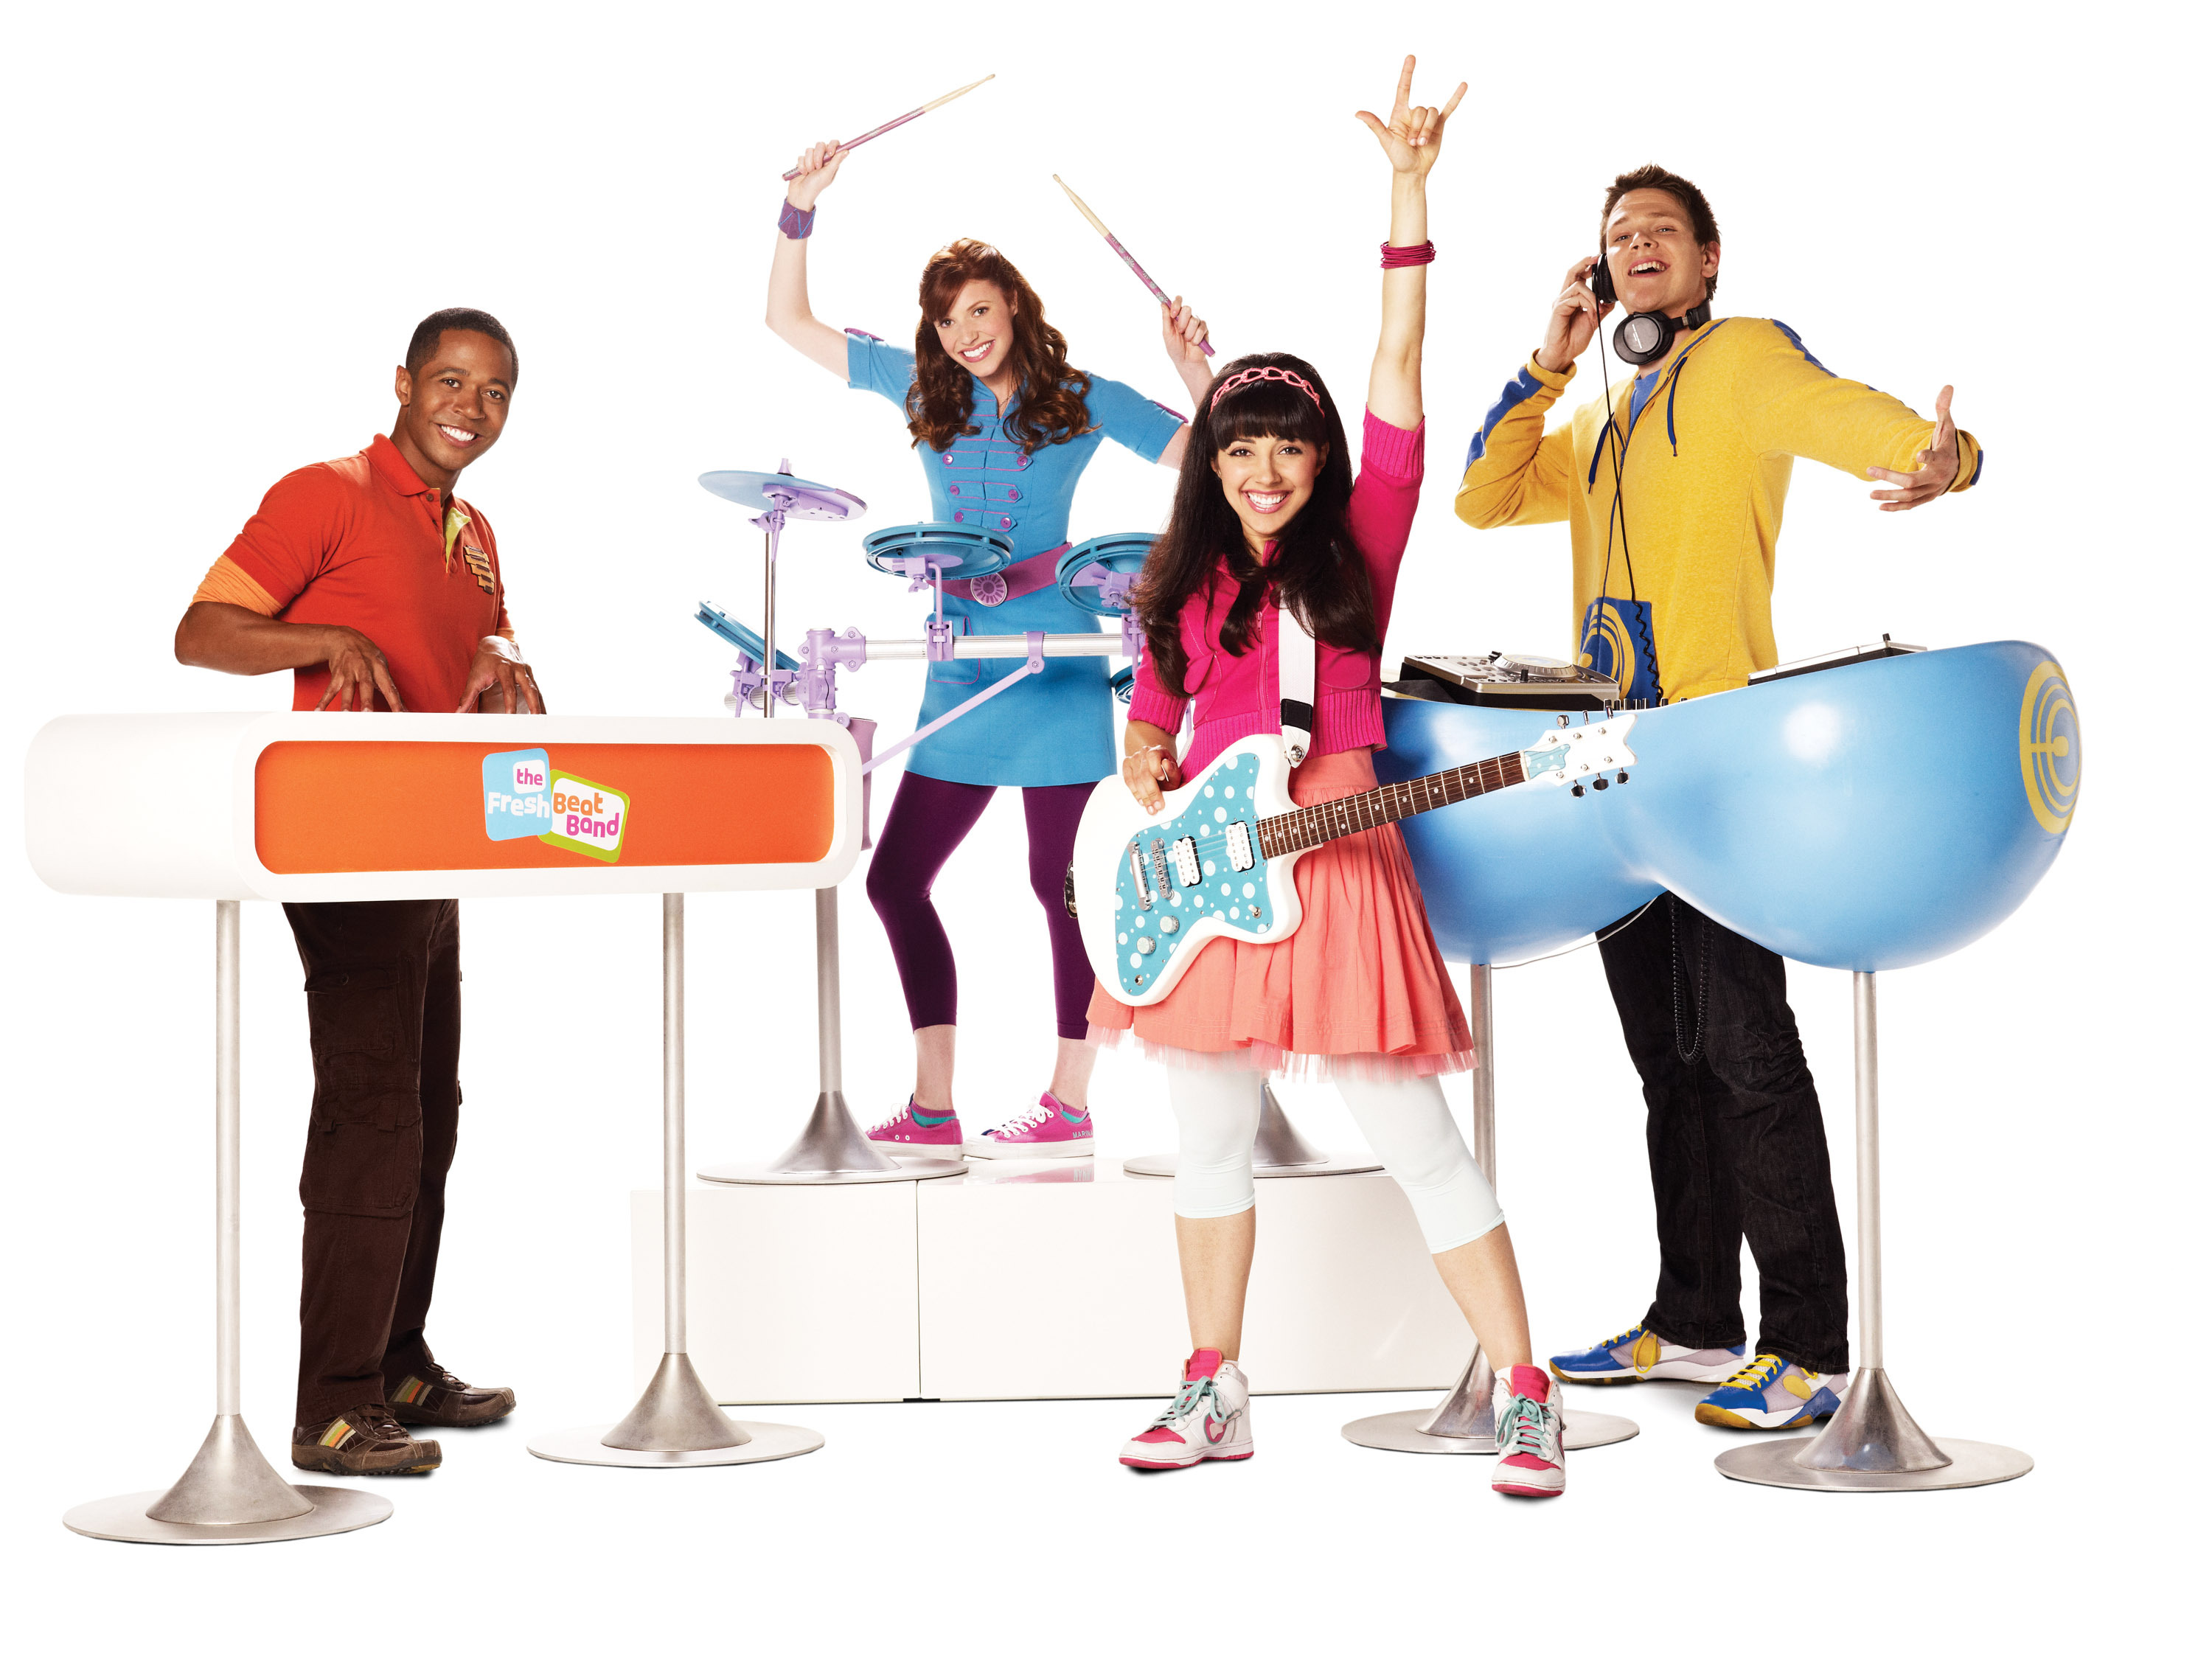 Nickelodeon's The Fresh Beat Band. Photo Credit: Nickelodeon